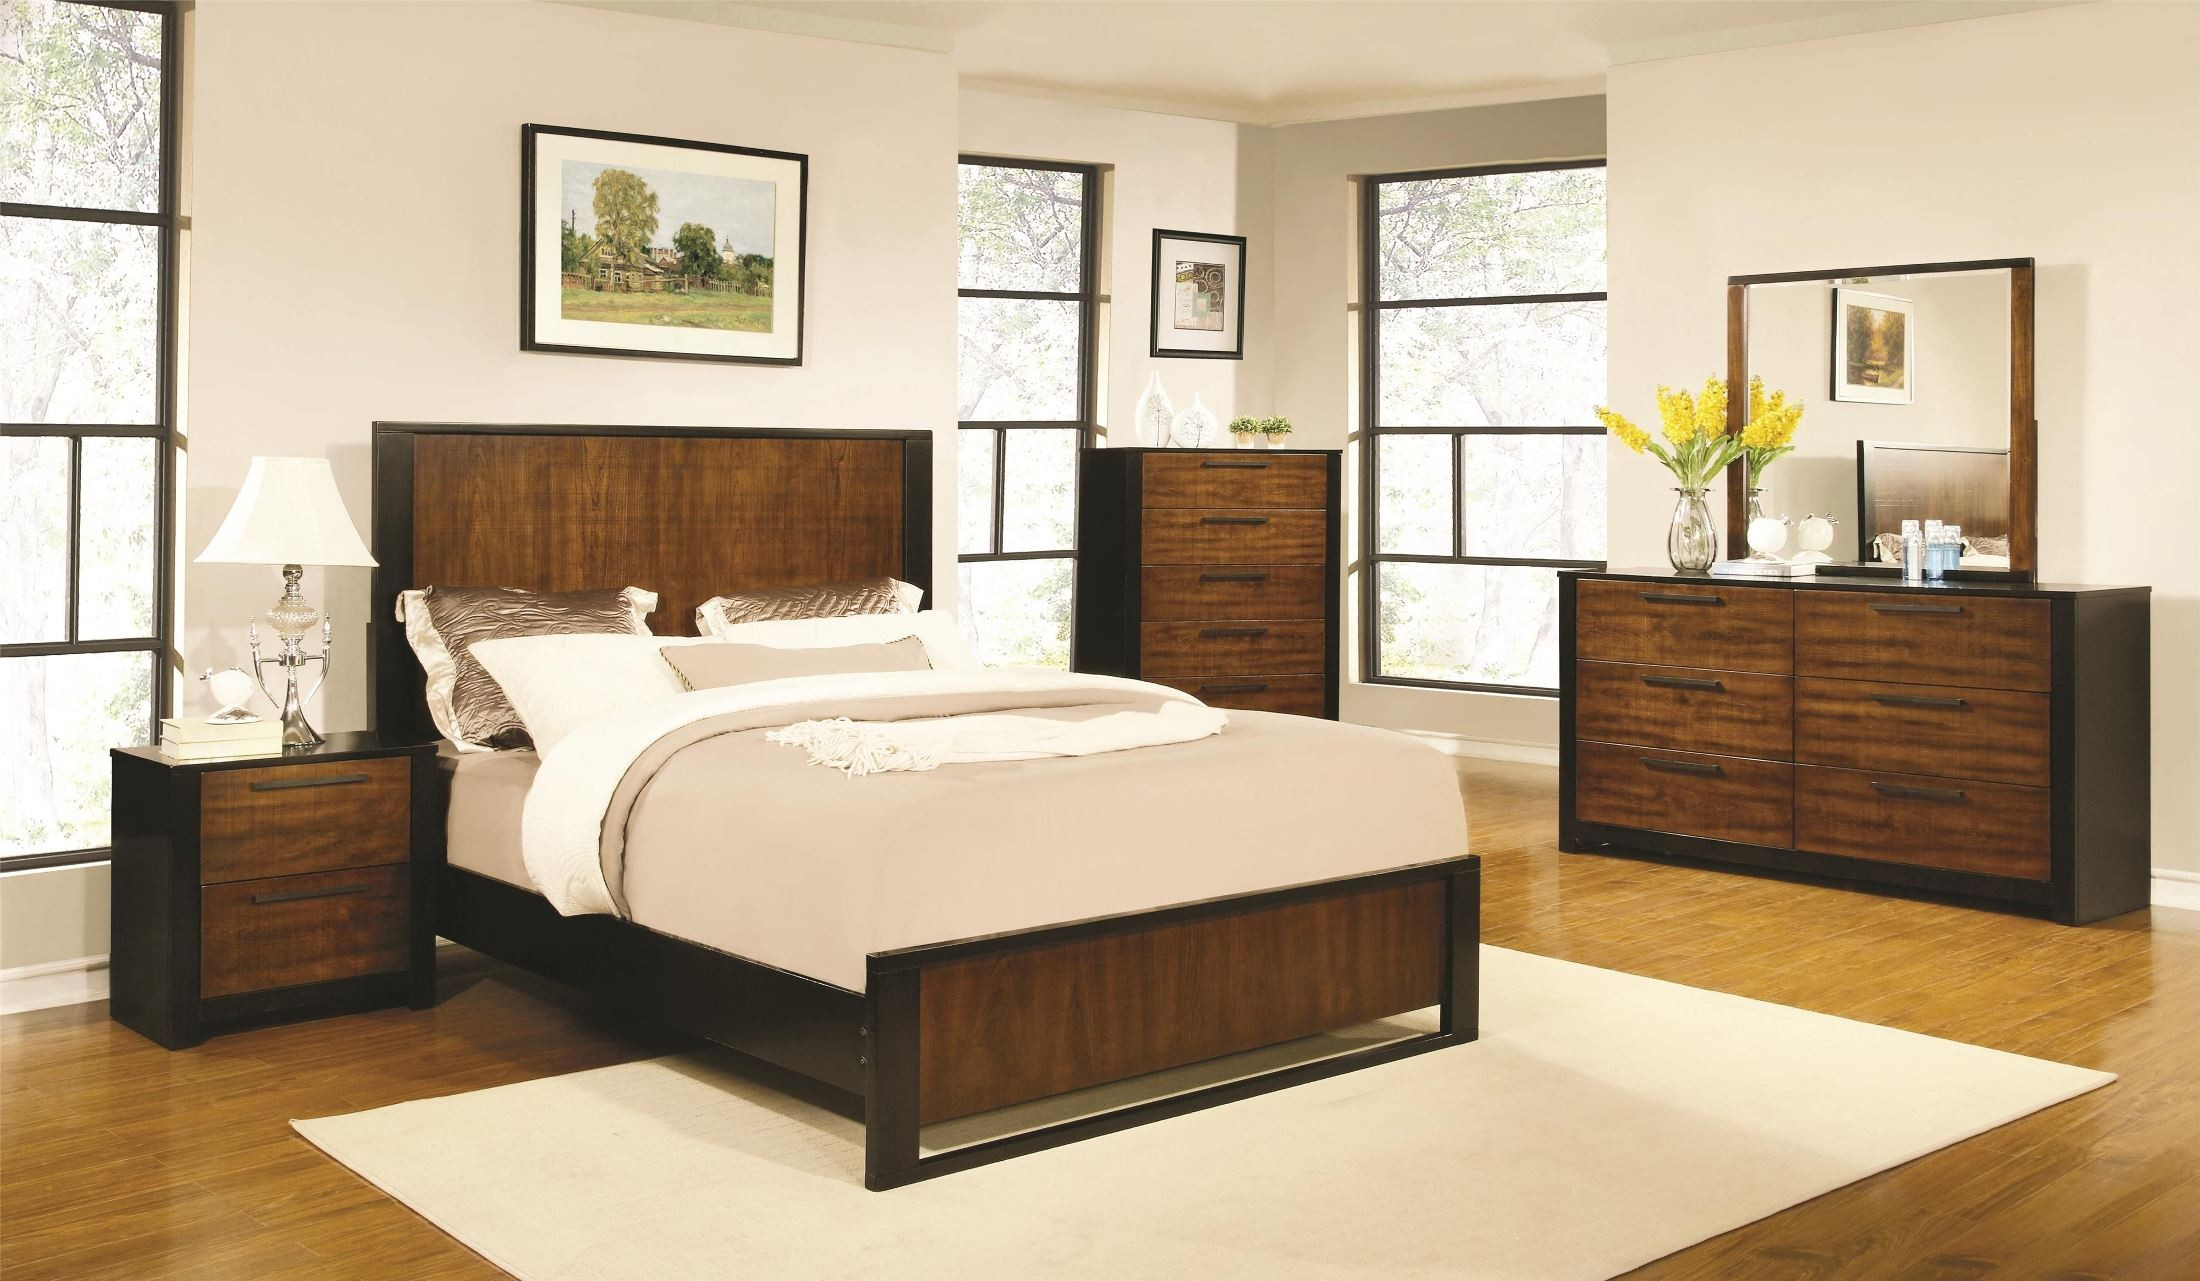 Coronado Natural Cherry Low Profile Bedroom Set From Coaster 203941Q Cole